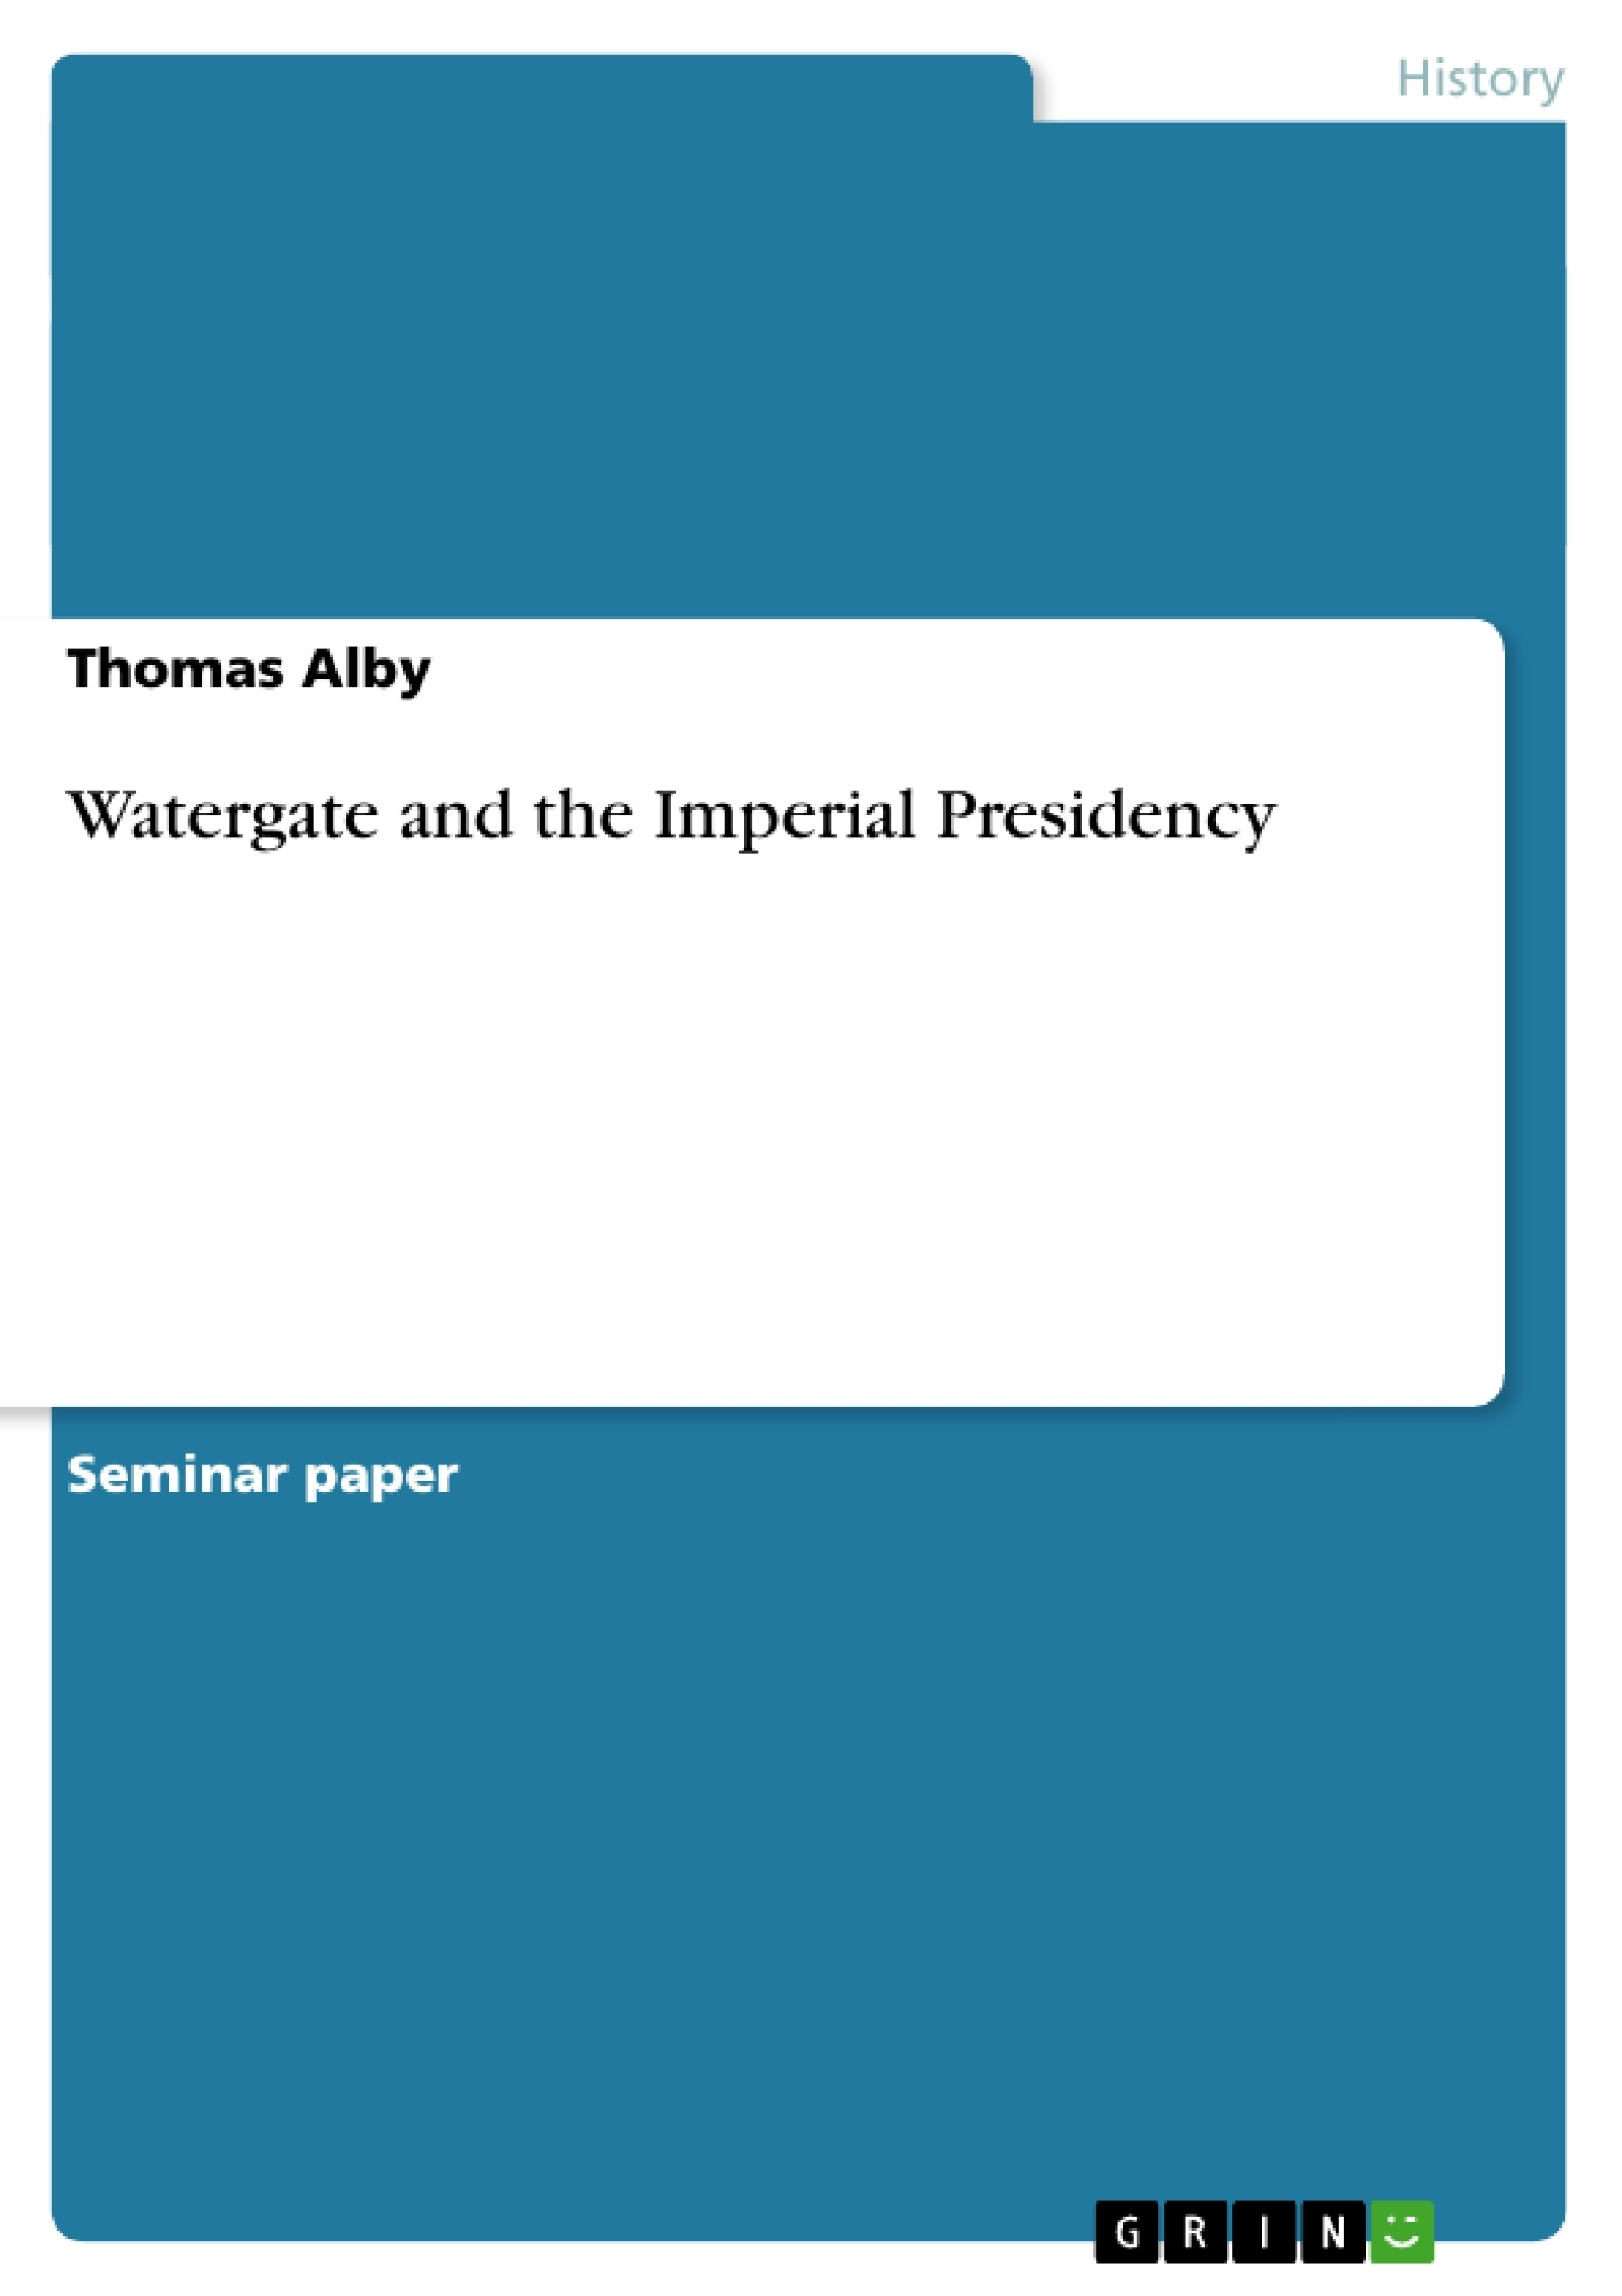 thesis thesis watergate scandal atlasmuscle com